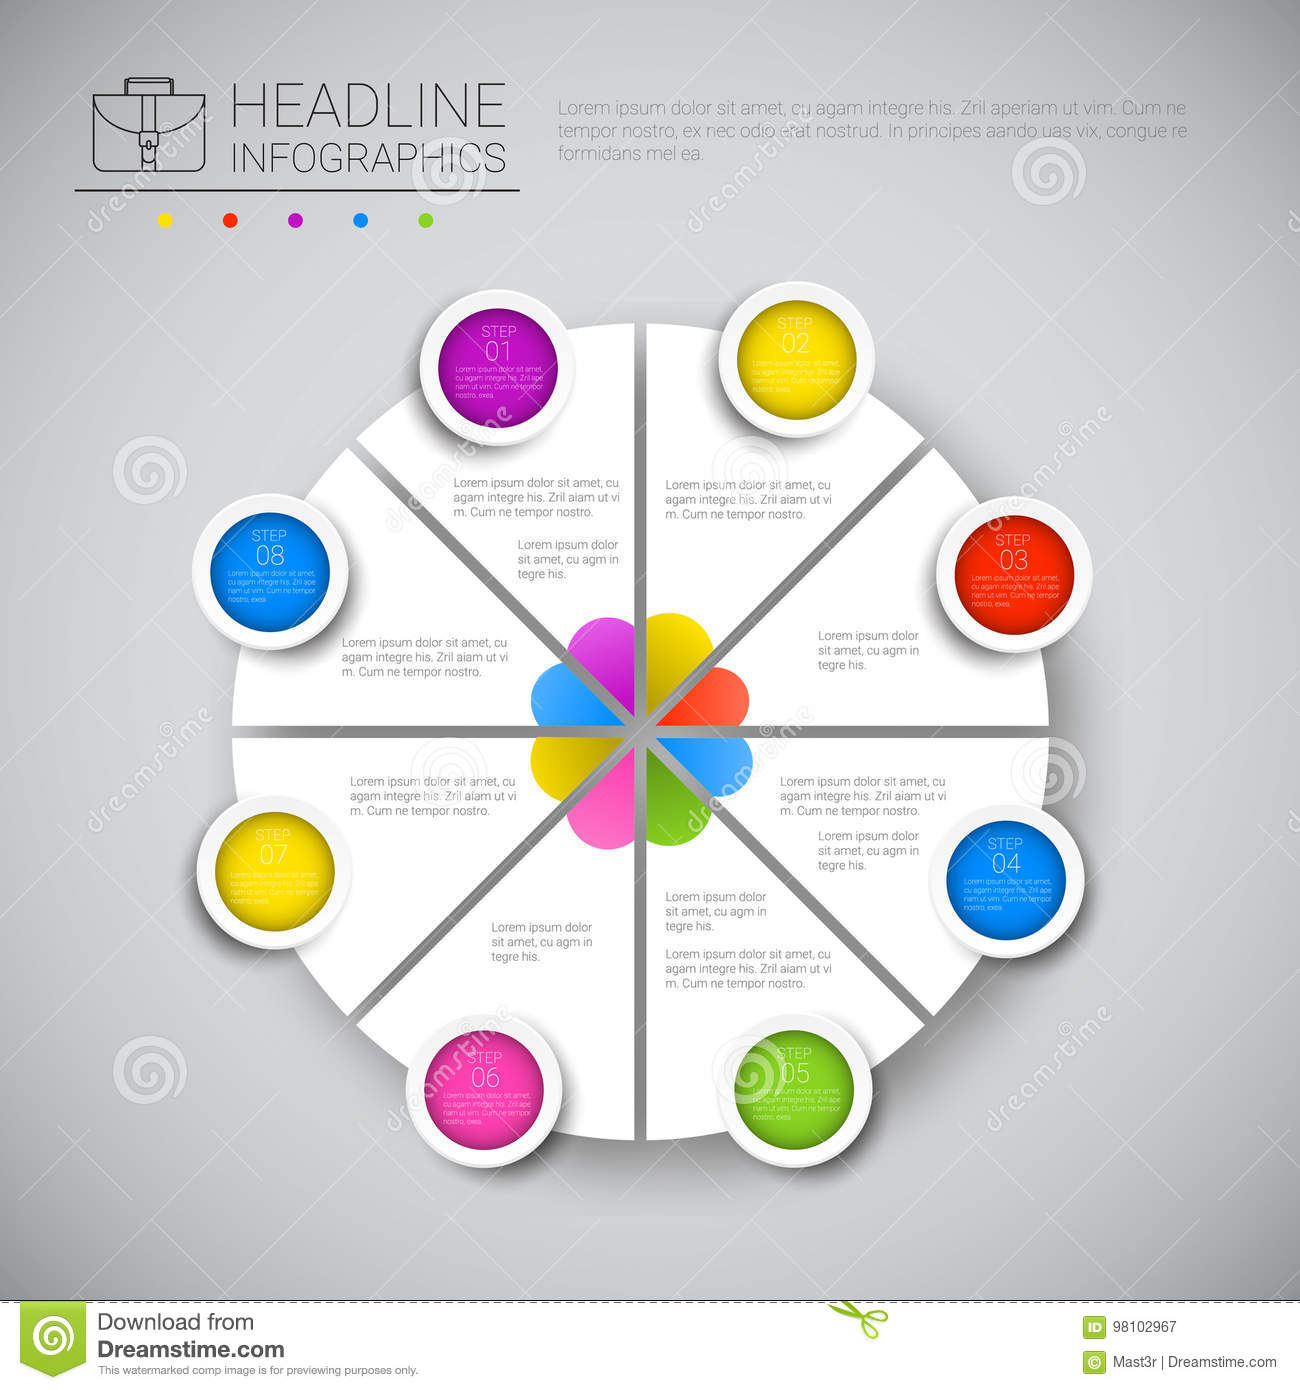 Headline Infographic Chart Pie Diagram Design Business